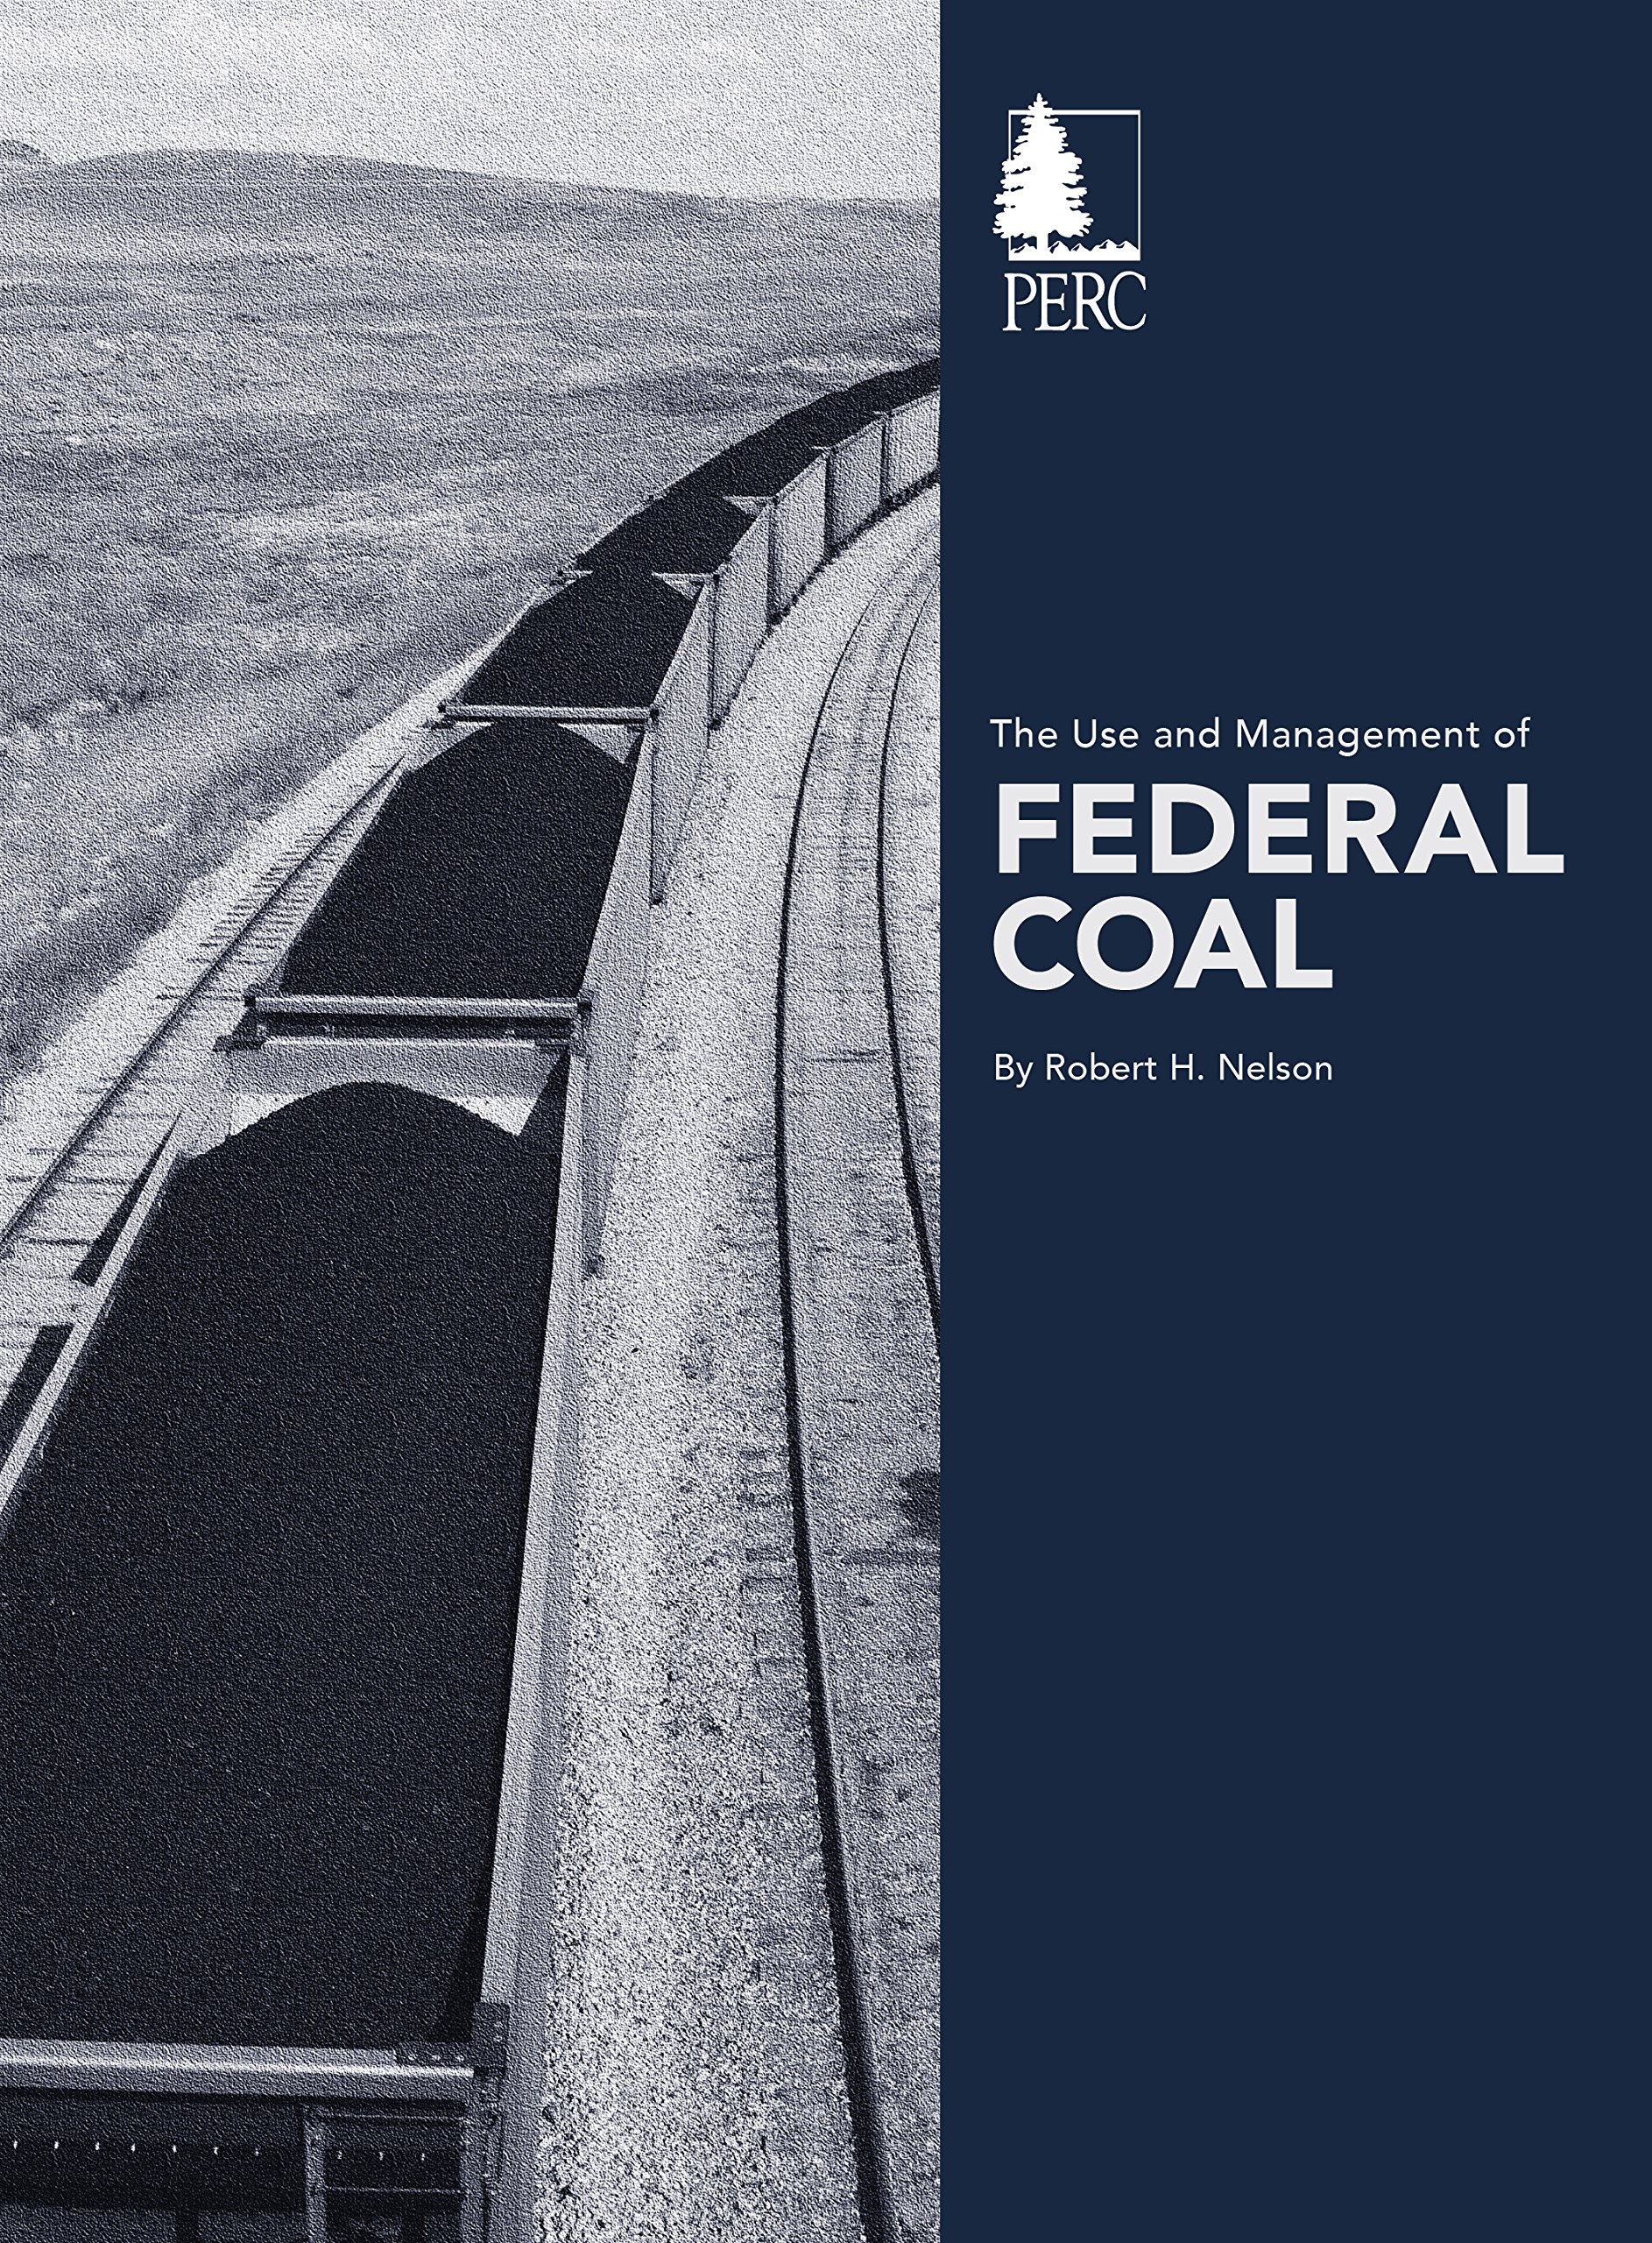 The Use and Management of Federal Coal